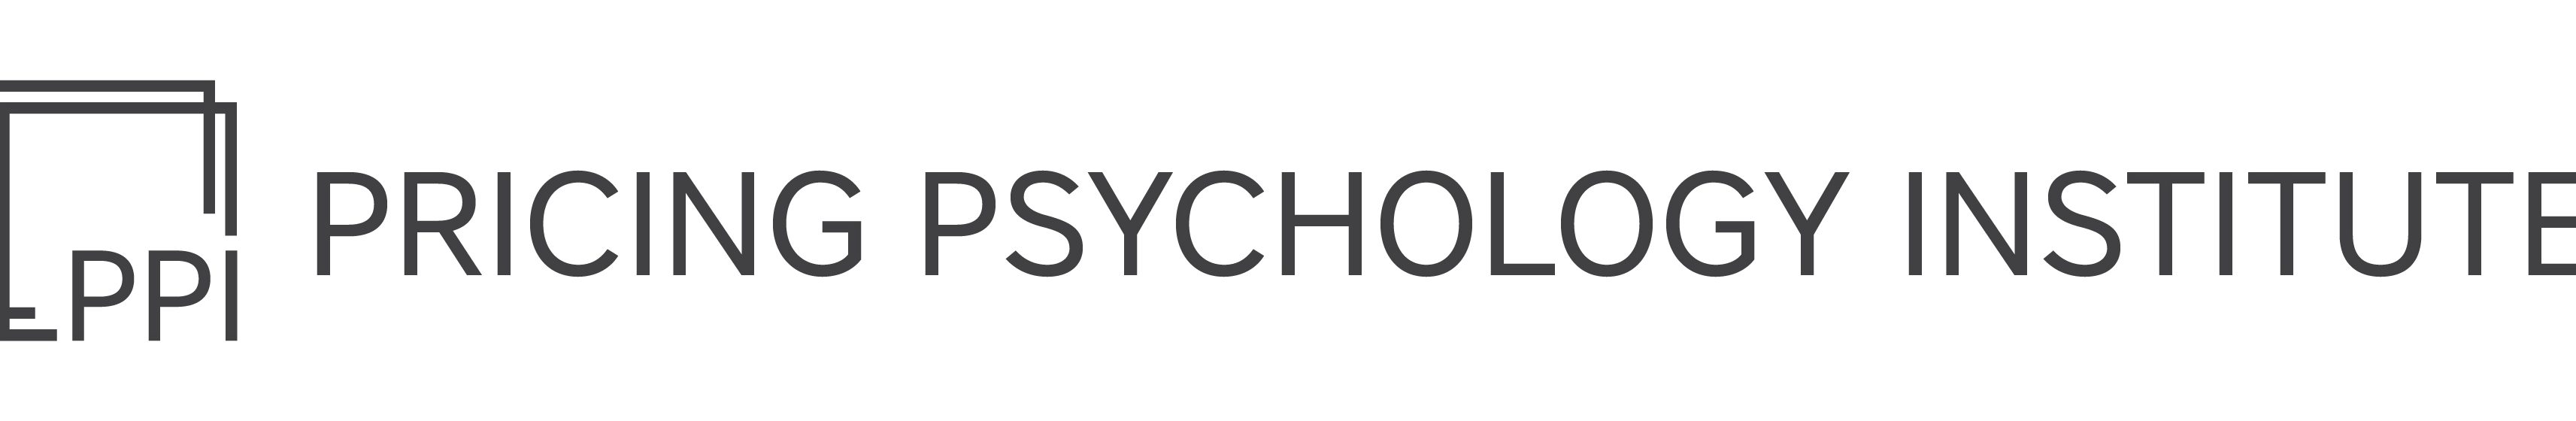 Pricing Psychology Institute